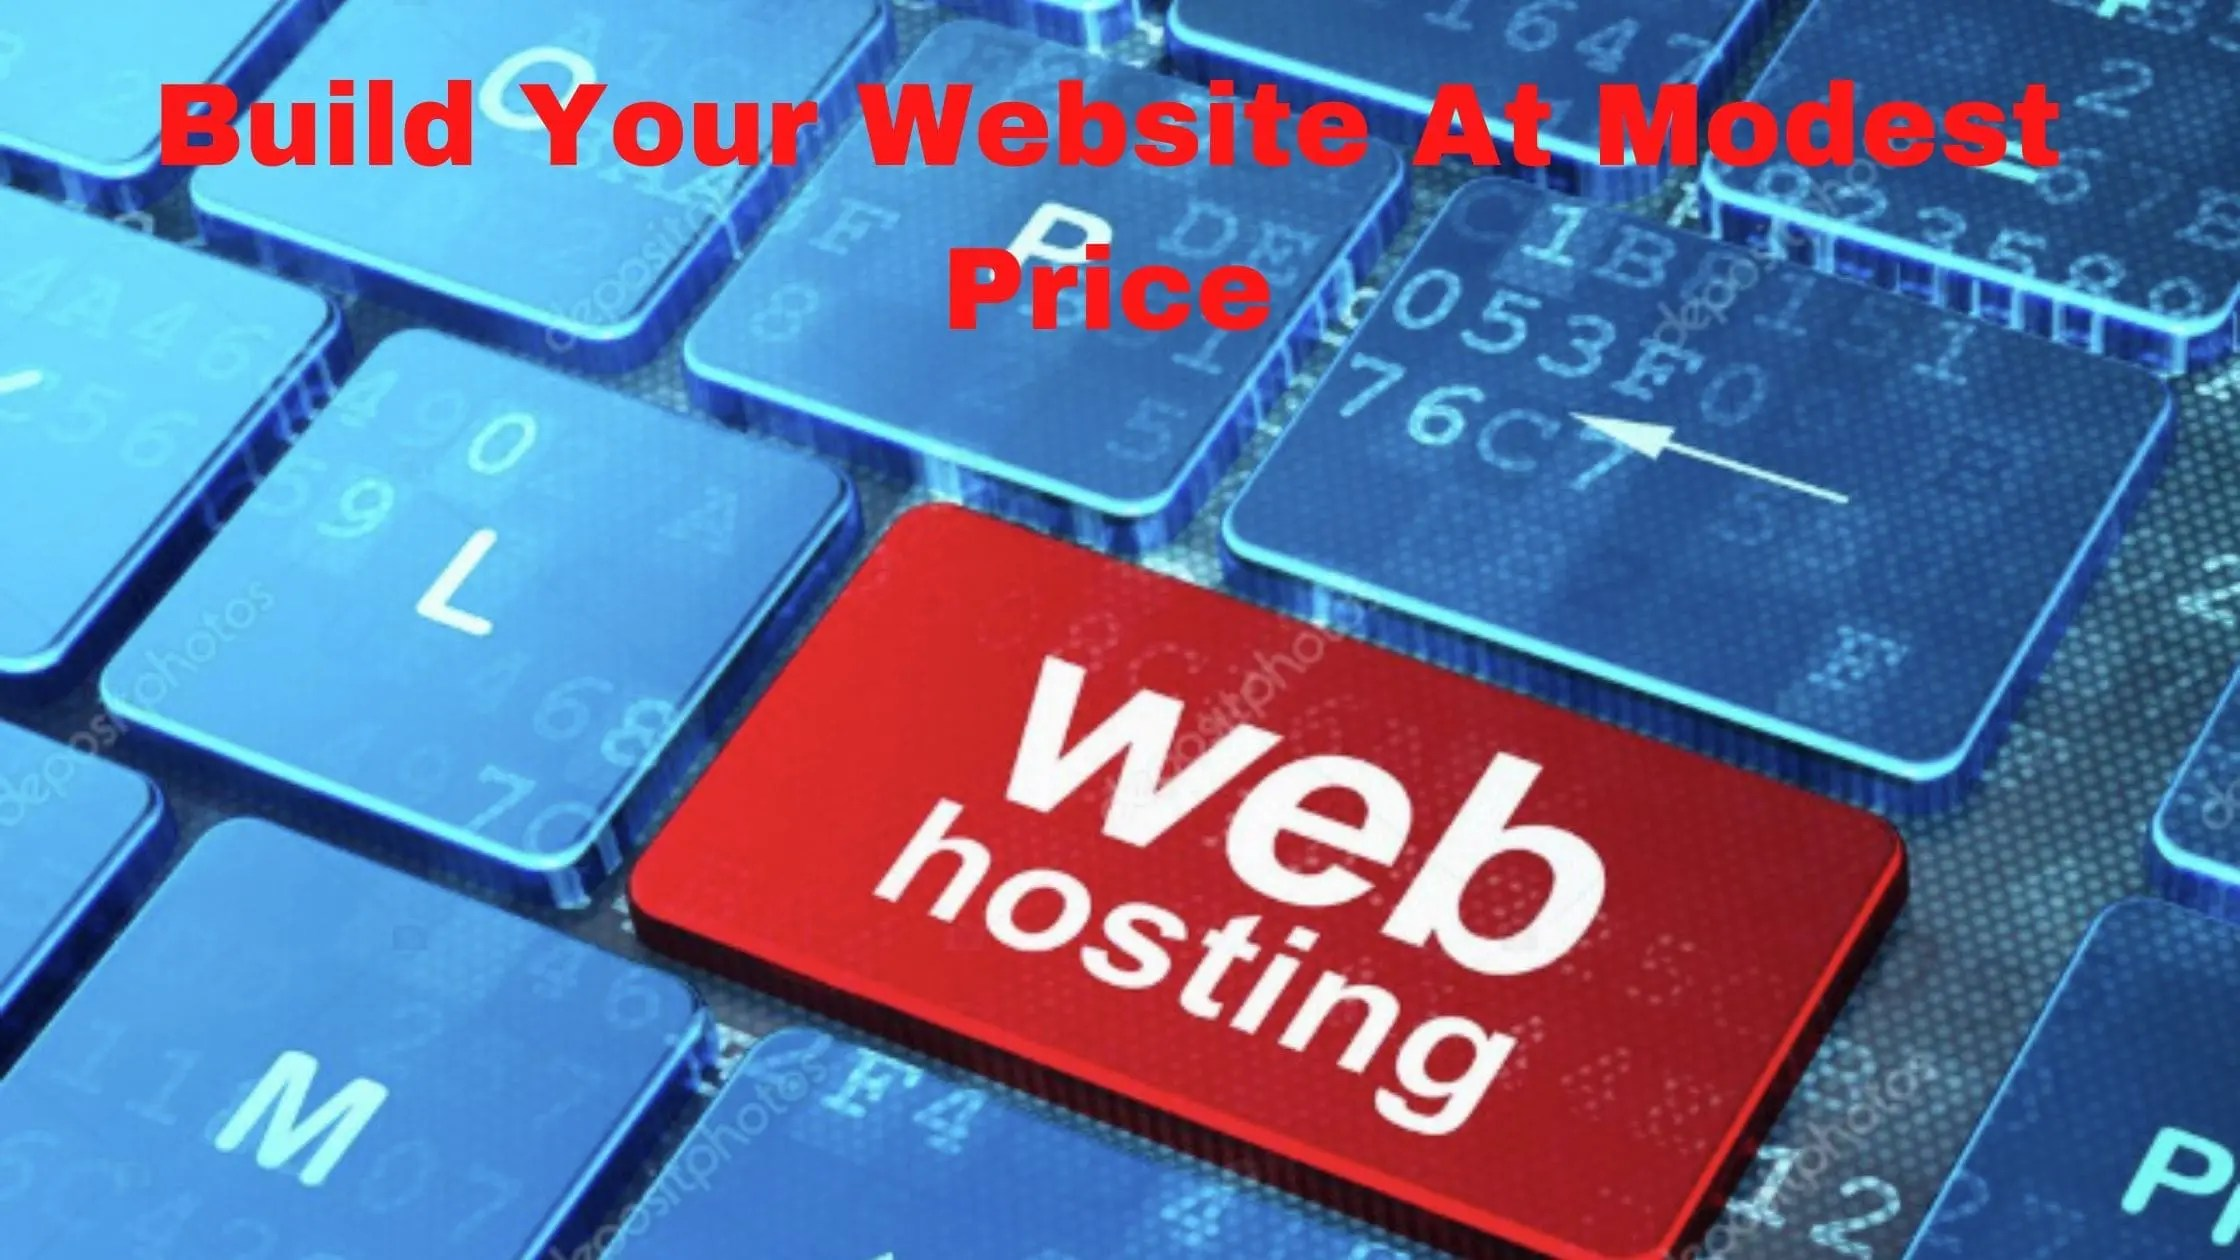 Build Your Website at Modest Price #1 Cheap Domain and Fast Hosting